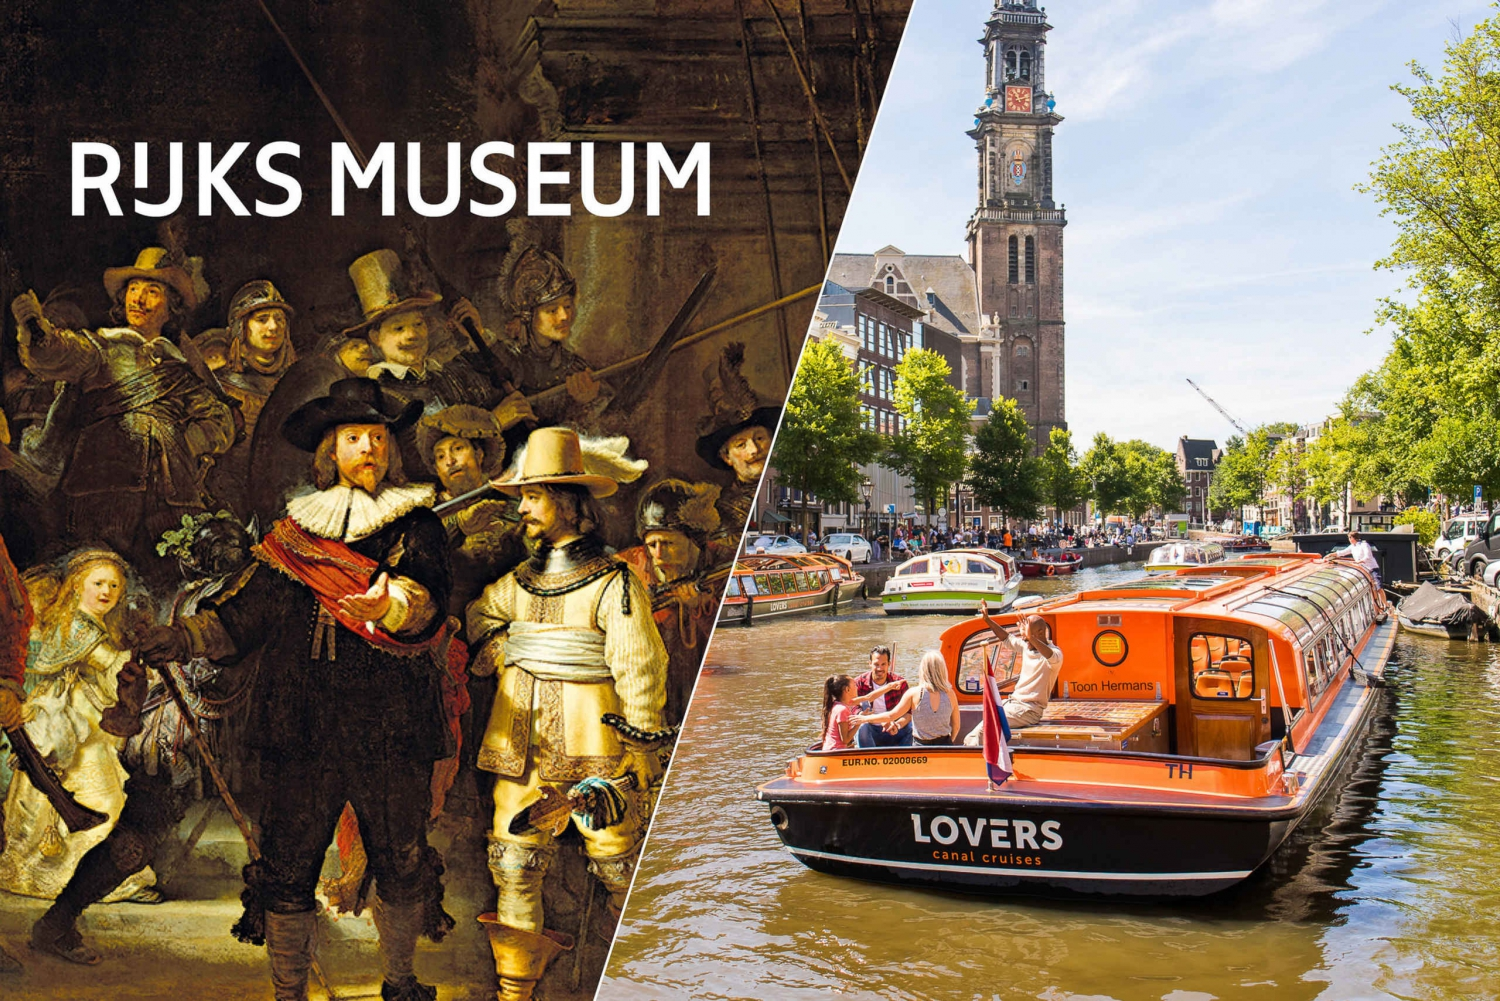 Rijksmuseum: Skip-the-Line Ticket and 1-Hour Cruise